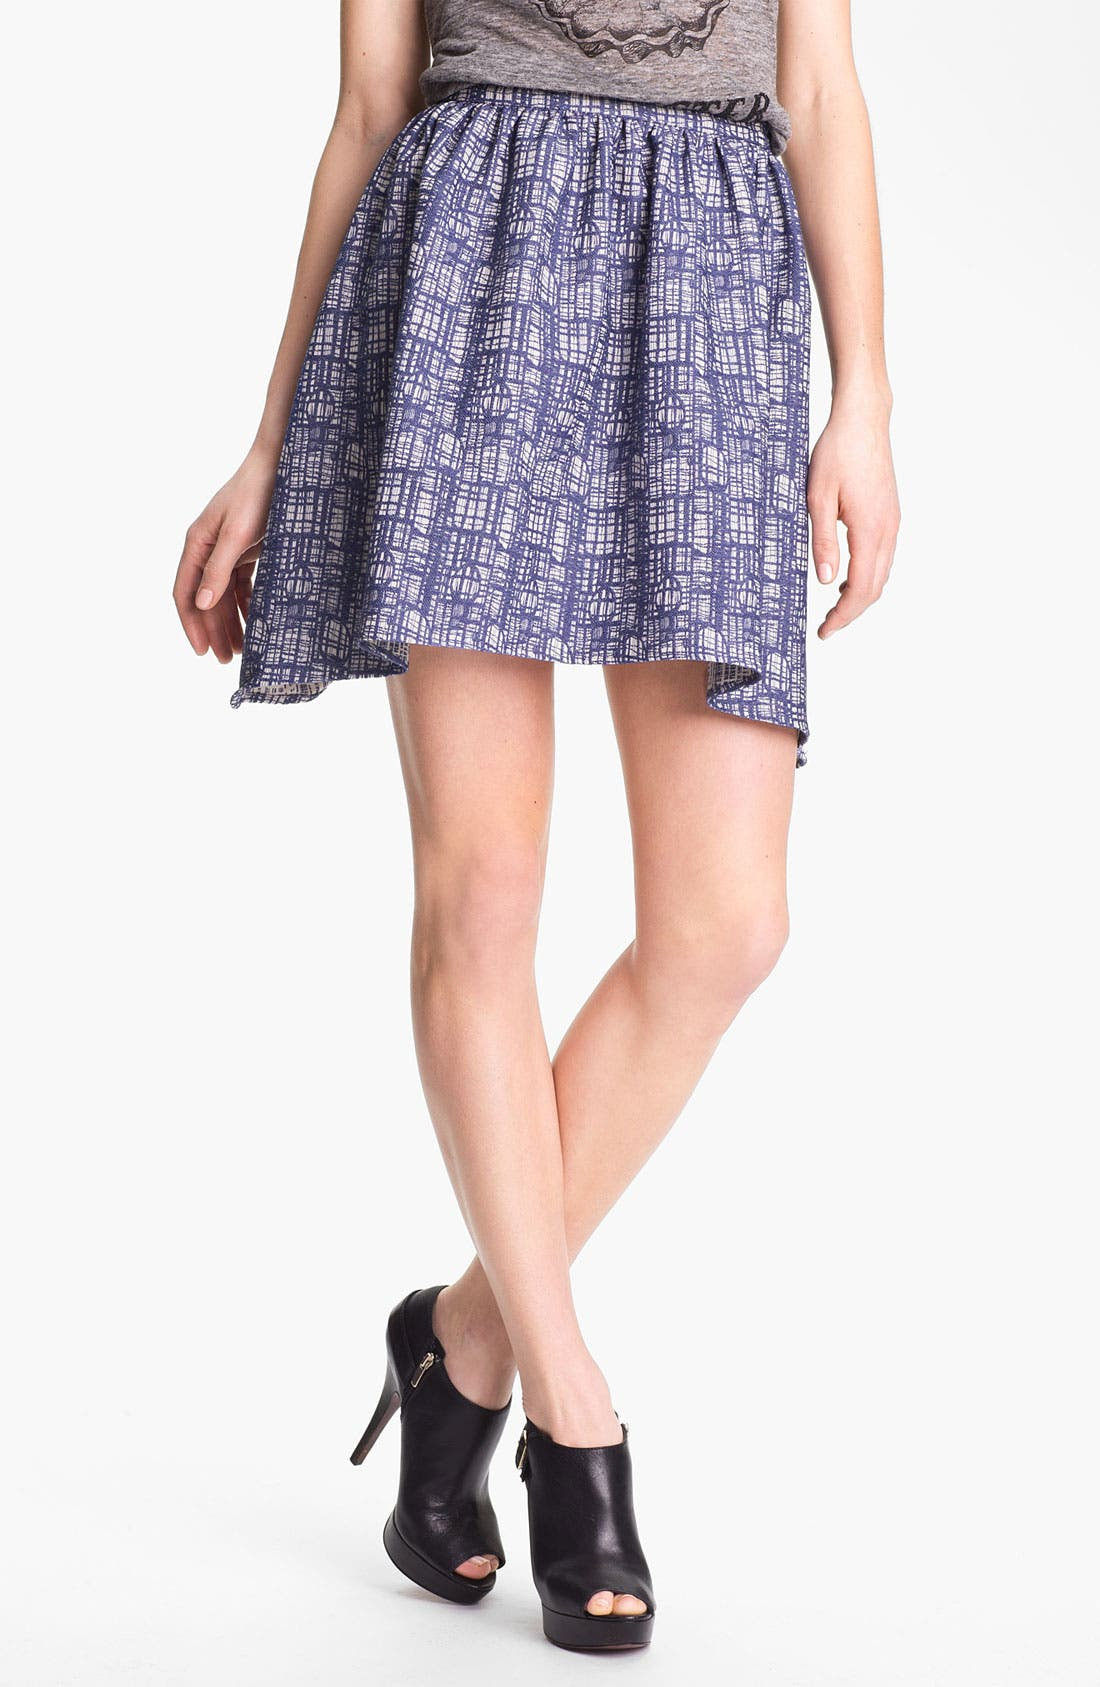 Alternate Image 1 Selected - Man Repeller X PJK 'Wendy' Jacquard Skirt